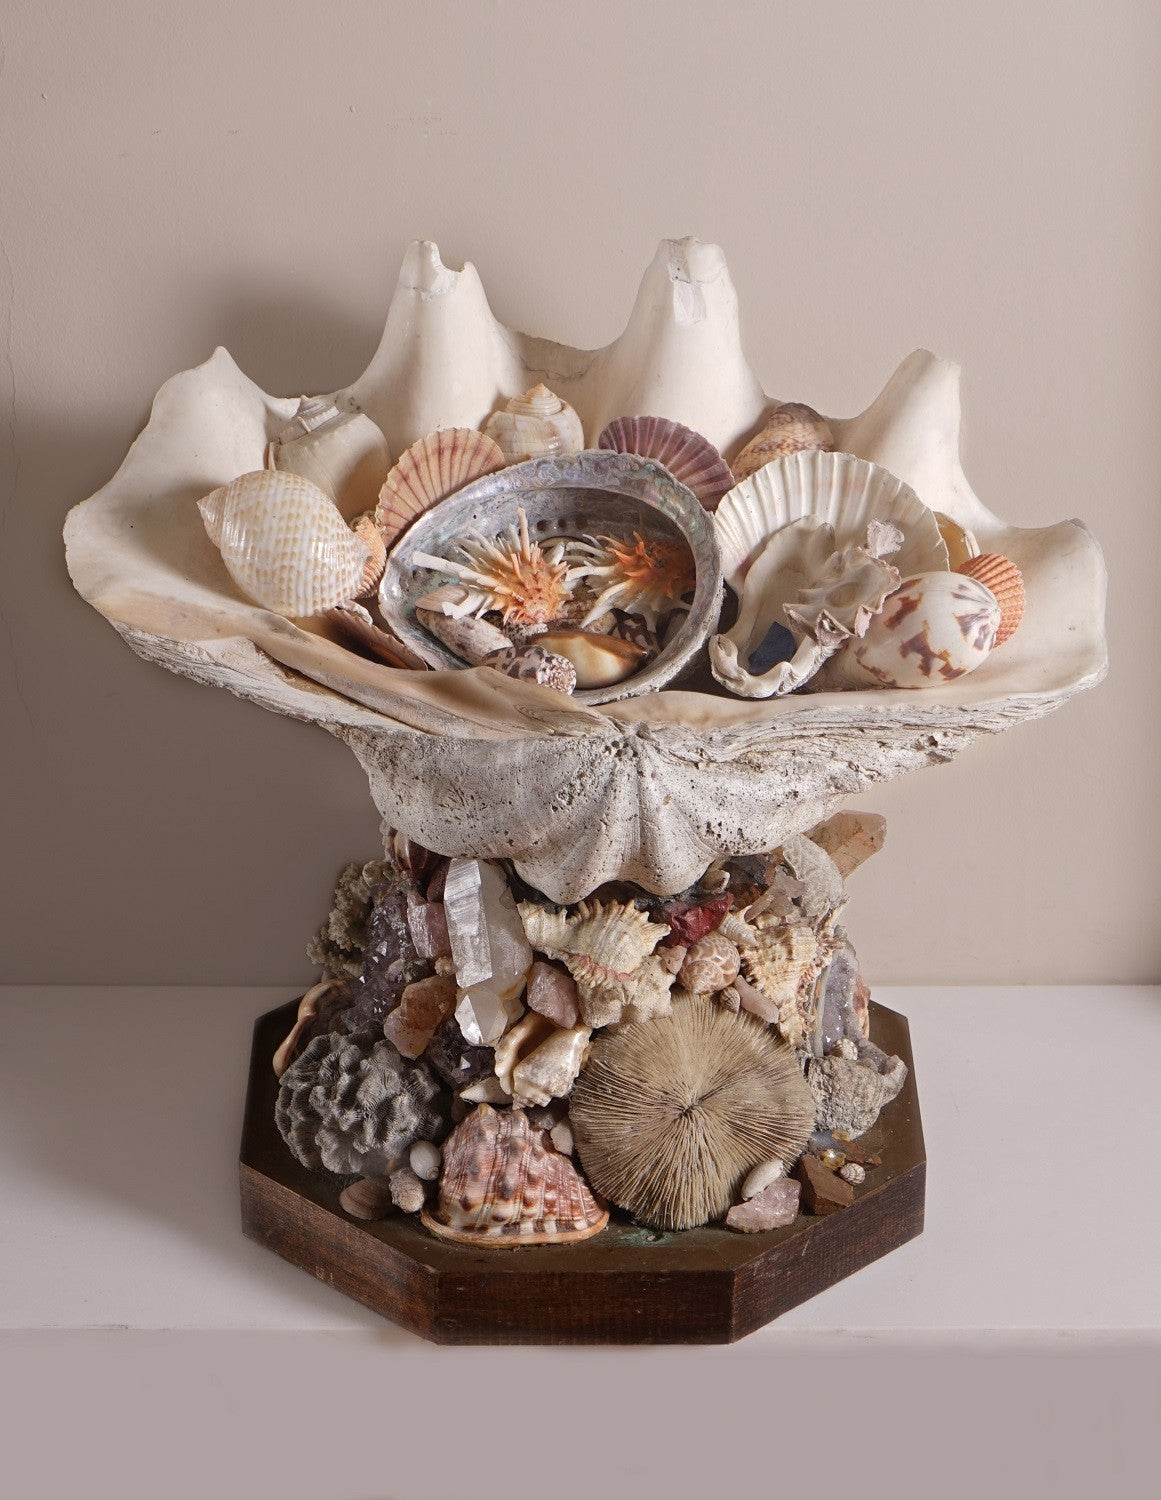 Exotic Shell and Mineral Centrepiece by Anthony Redmile